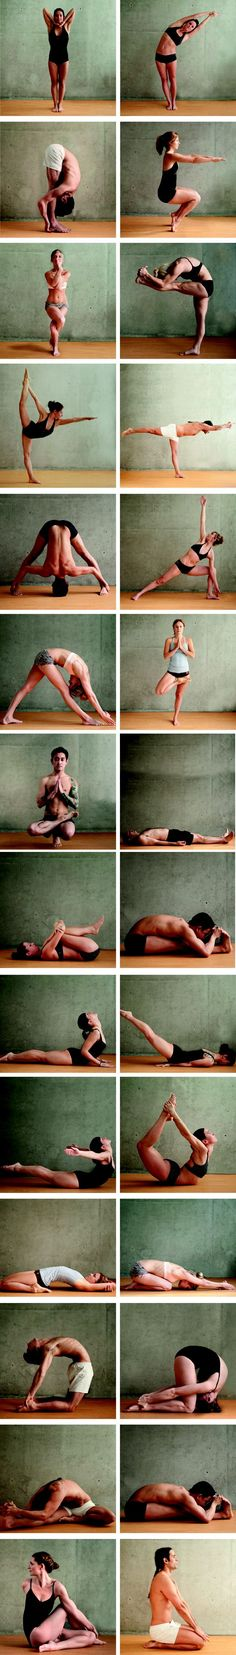 26 Bikram Yoga Poses #yoga #fitness   http://bikramyogavancouver.com/new-to-bikram-yoga-vancouver/26-bikram-yoga-poses/ More